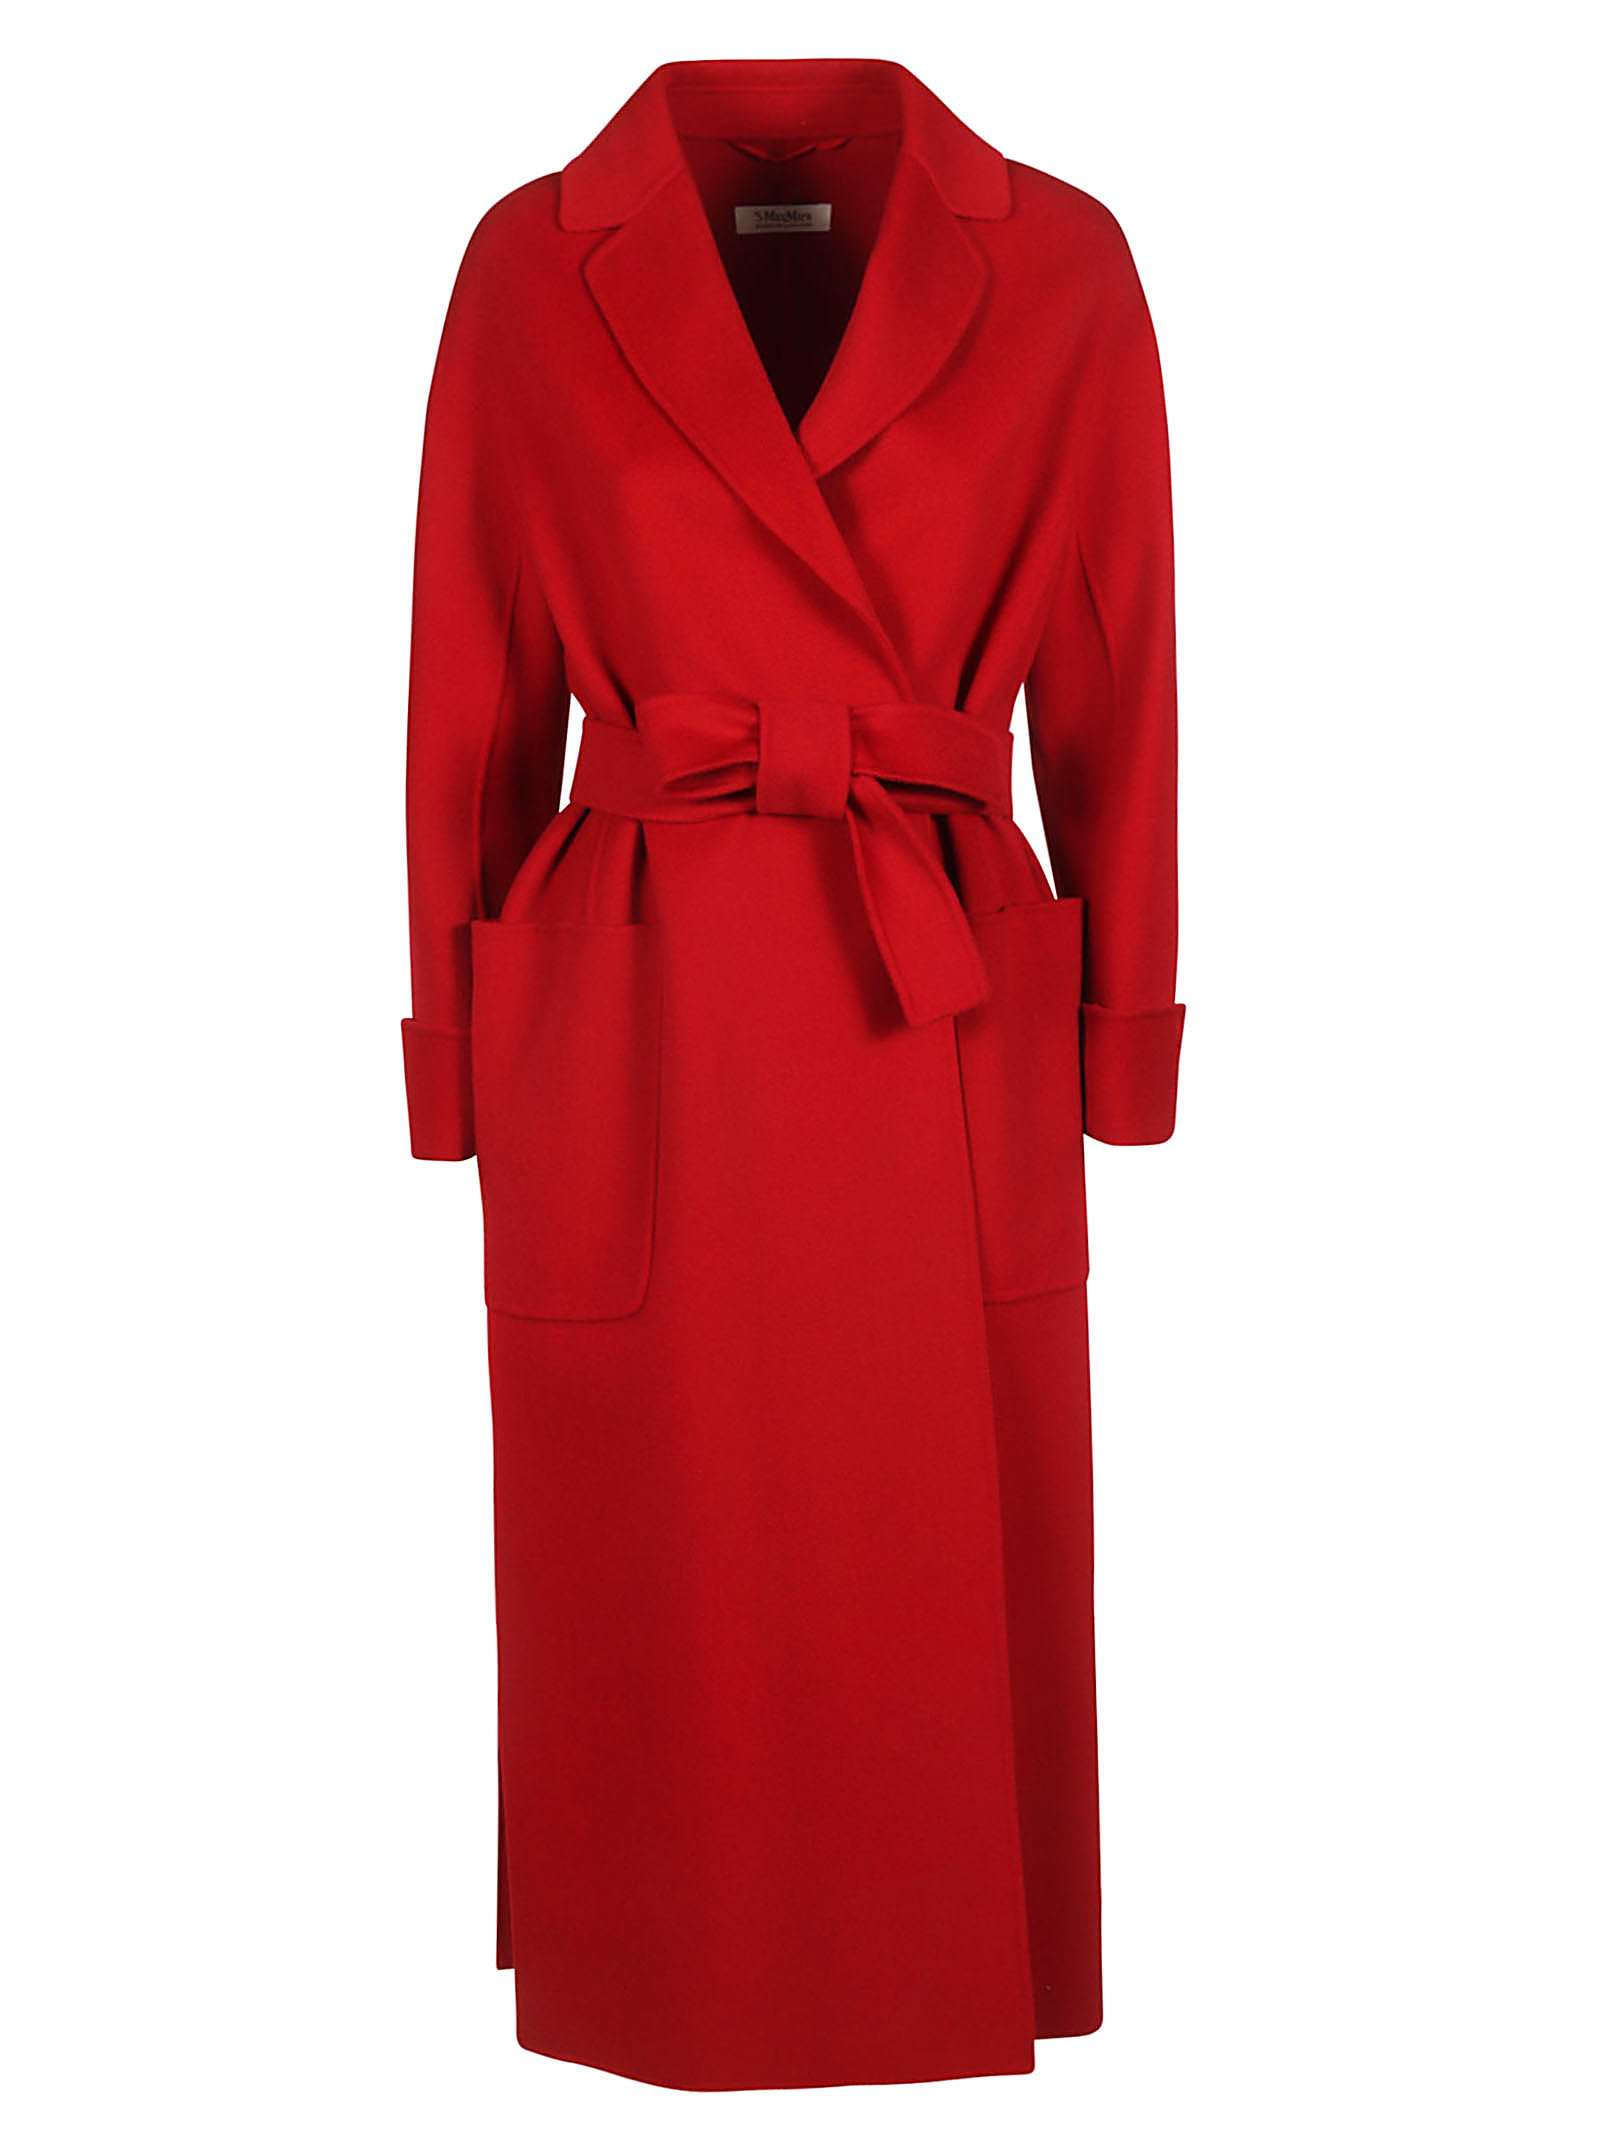 S Max Mara Here is The Cube Algeri Coat